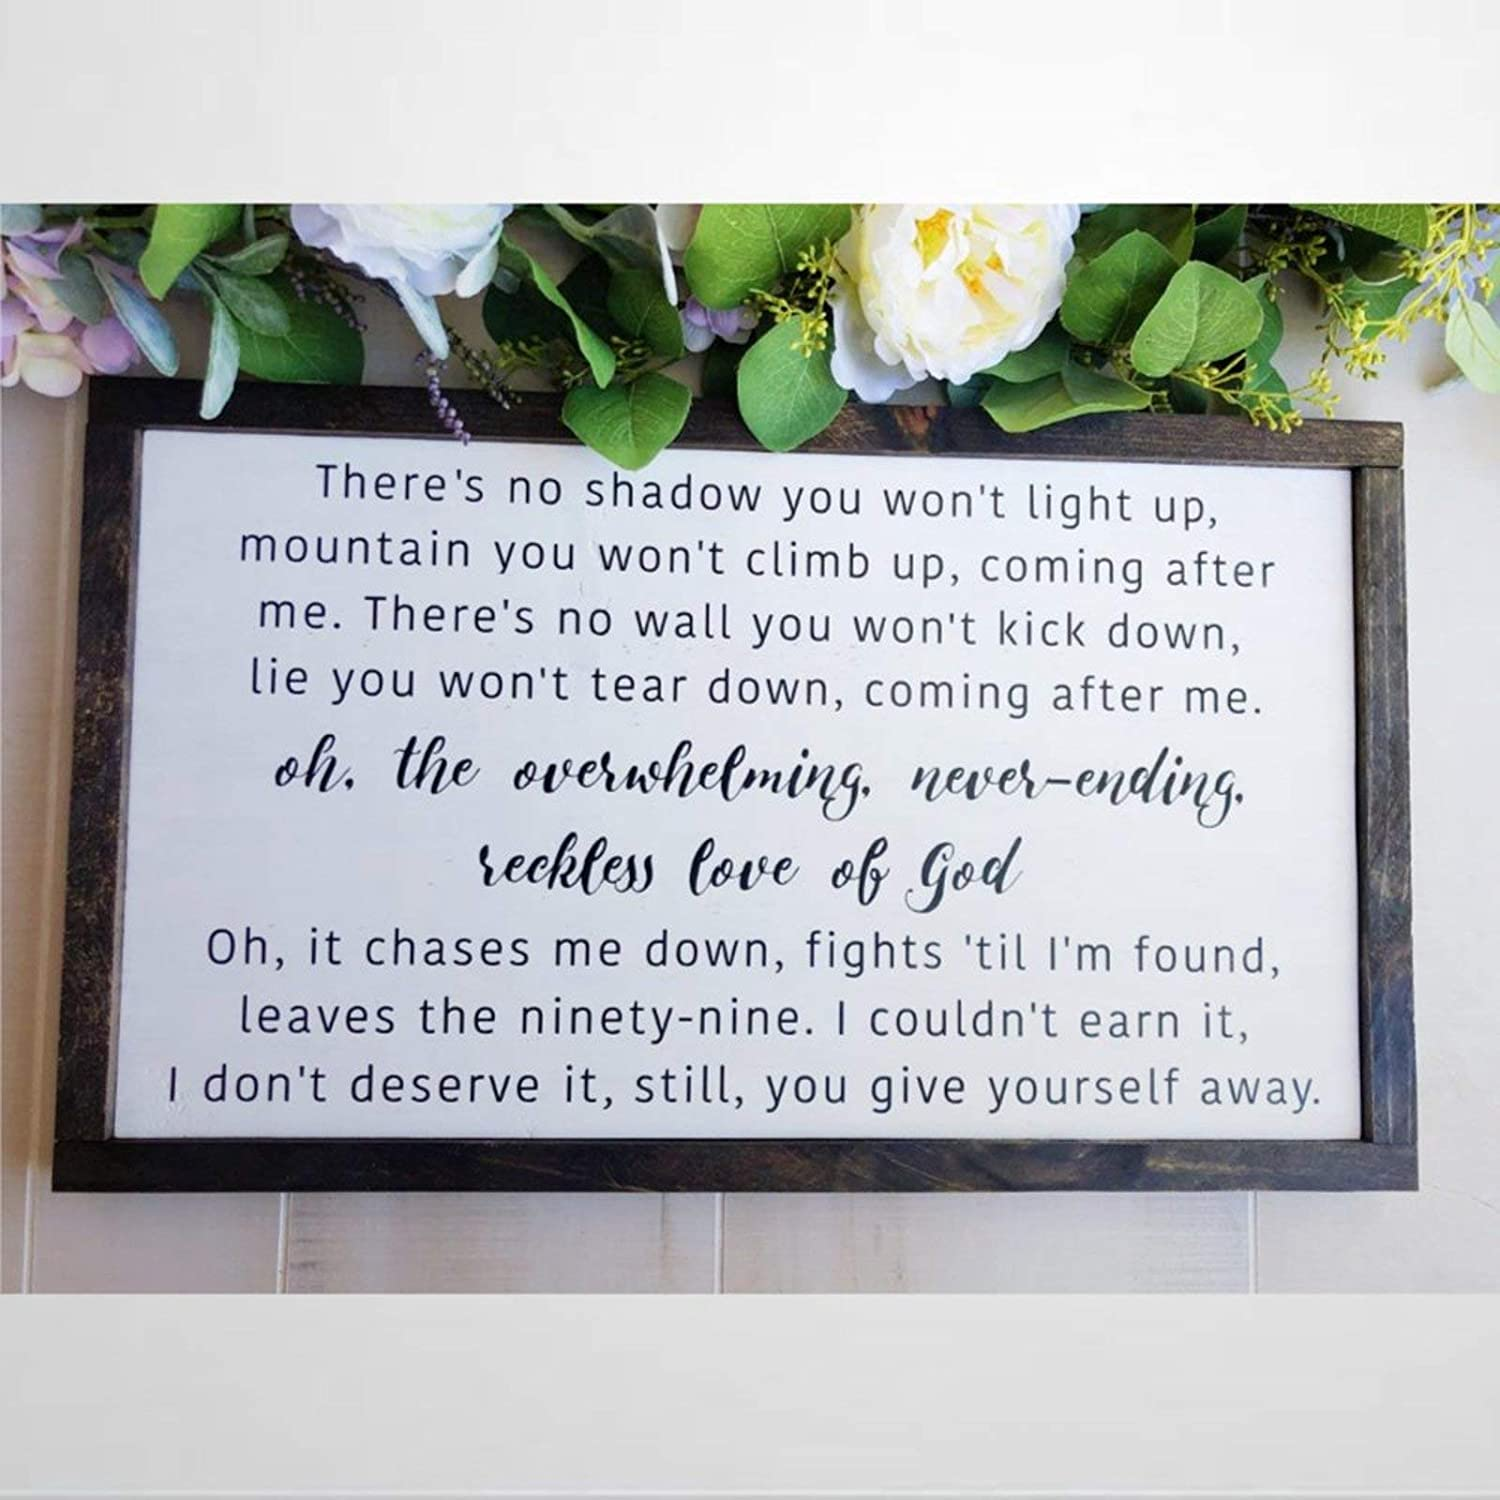 BYRON HOYLE Reckless Love Framed Wood Sign, Wooden Wall Hanging Art, Inspirational Farmhouse Wall Plaque, Rustic Home Decor for Nursery, Porch, Gallery Wall, Housewarming